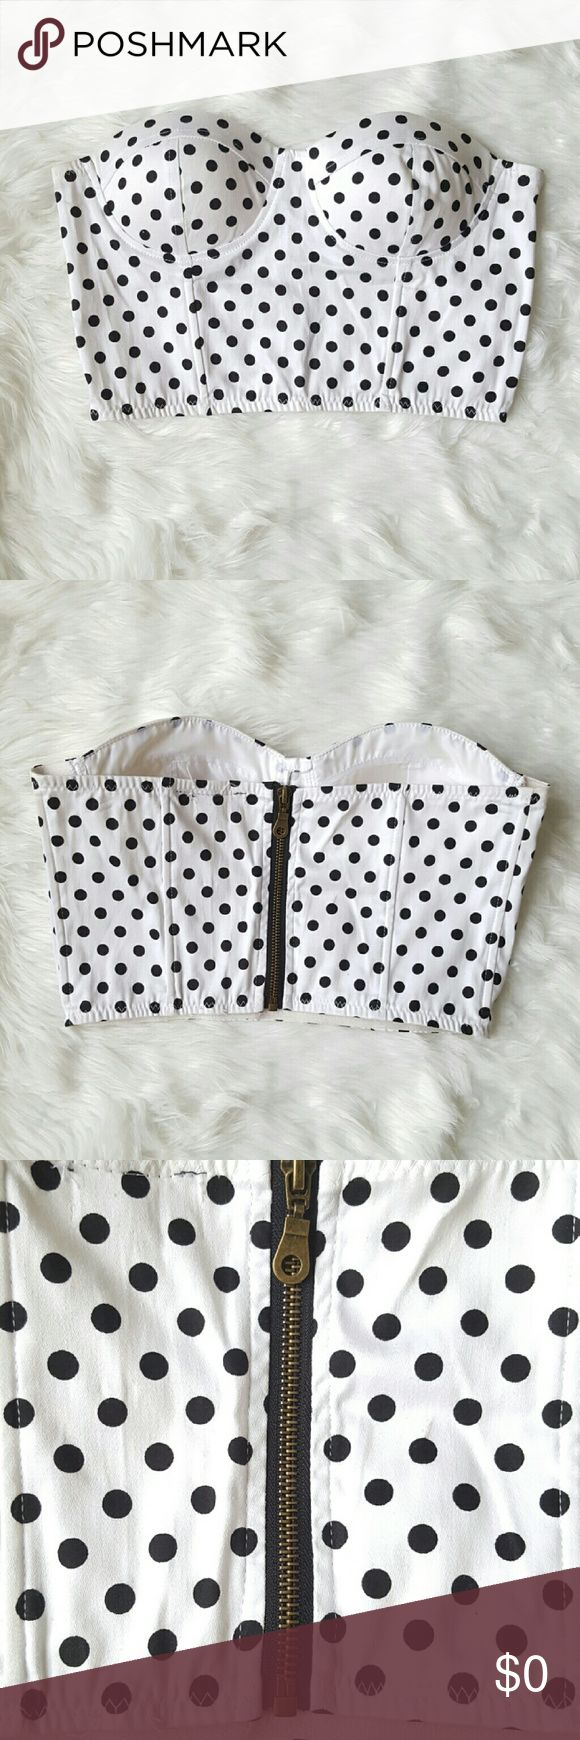 Polka Dot Crop Top A flirty strapless crop top with a fun polka dot pattern. It is padded and has a zipper closure. Measurements will be provided upon request. Tops Crop Tops